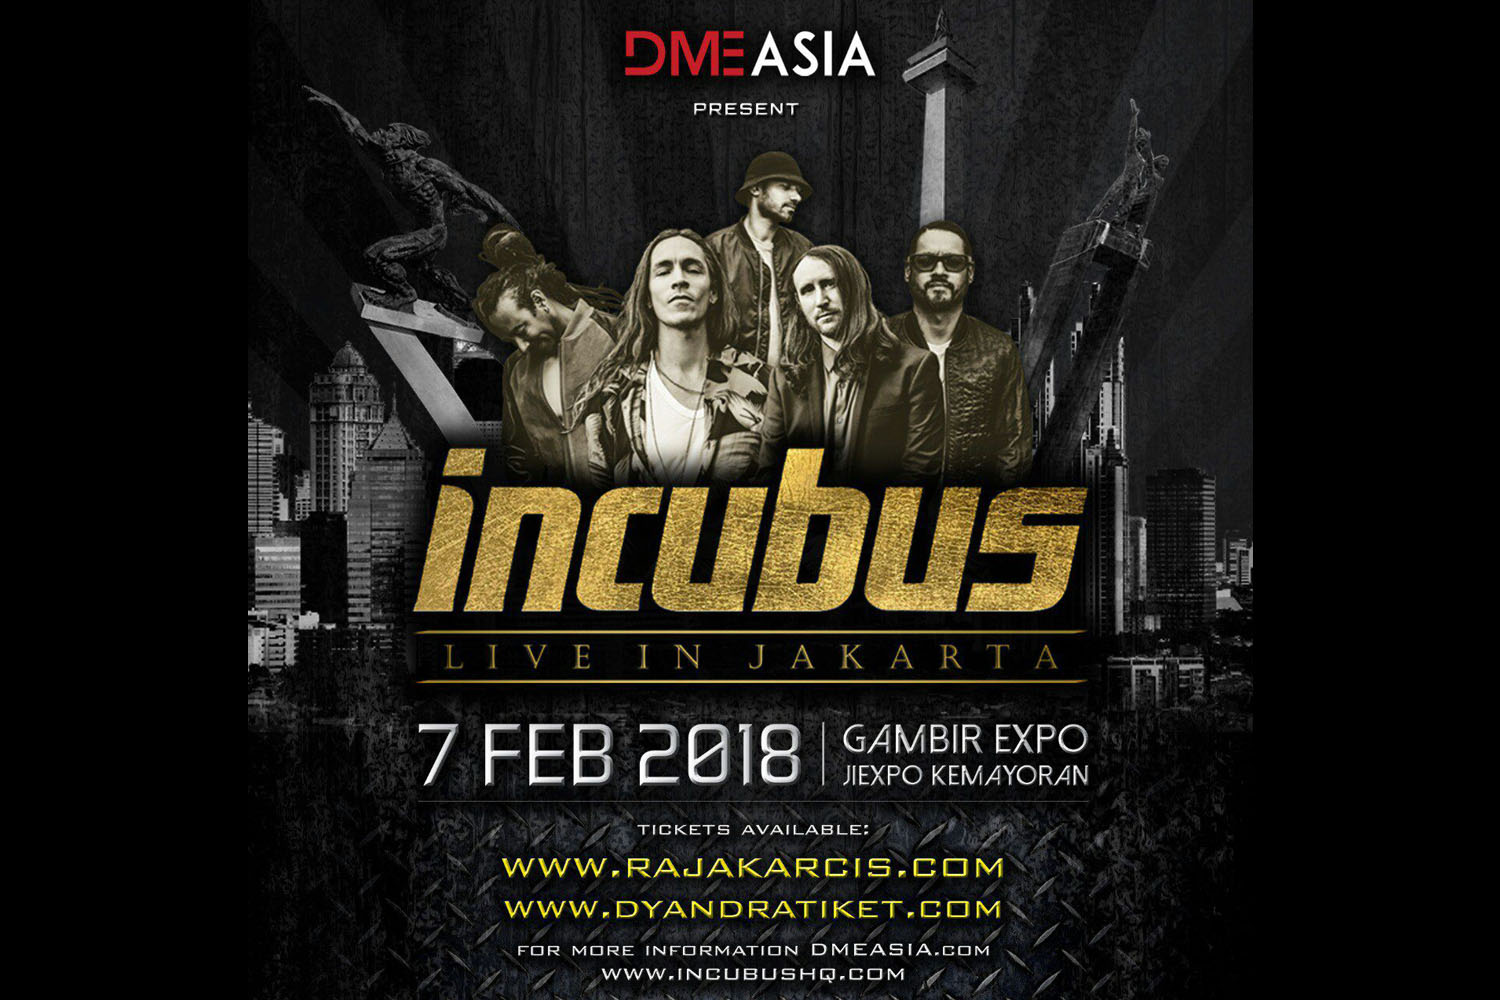 Incubus Songs List Simple nhbl - incubus is set to return to jakarta for the third time